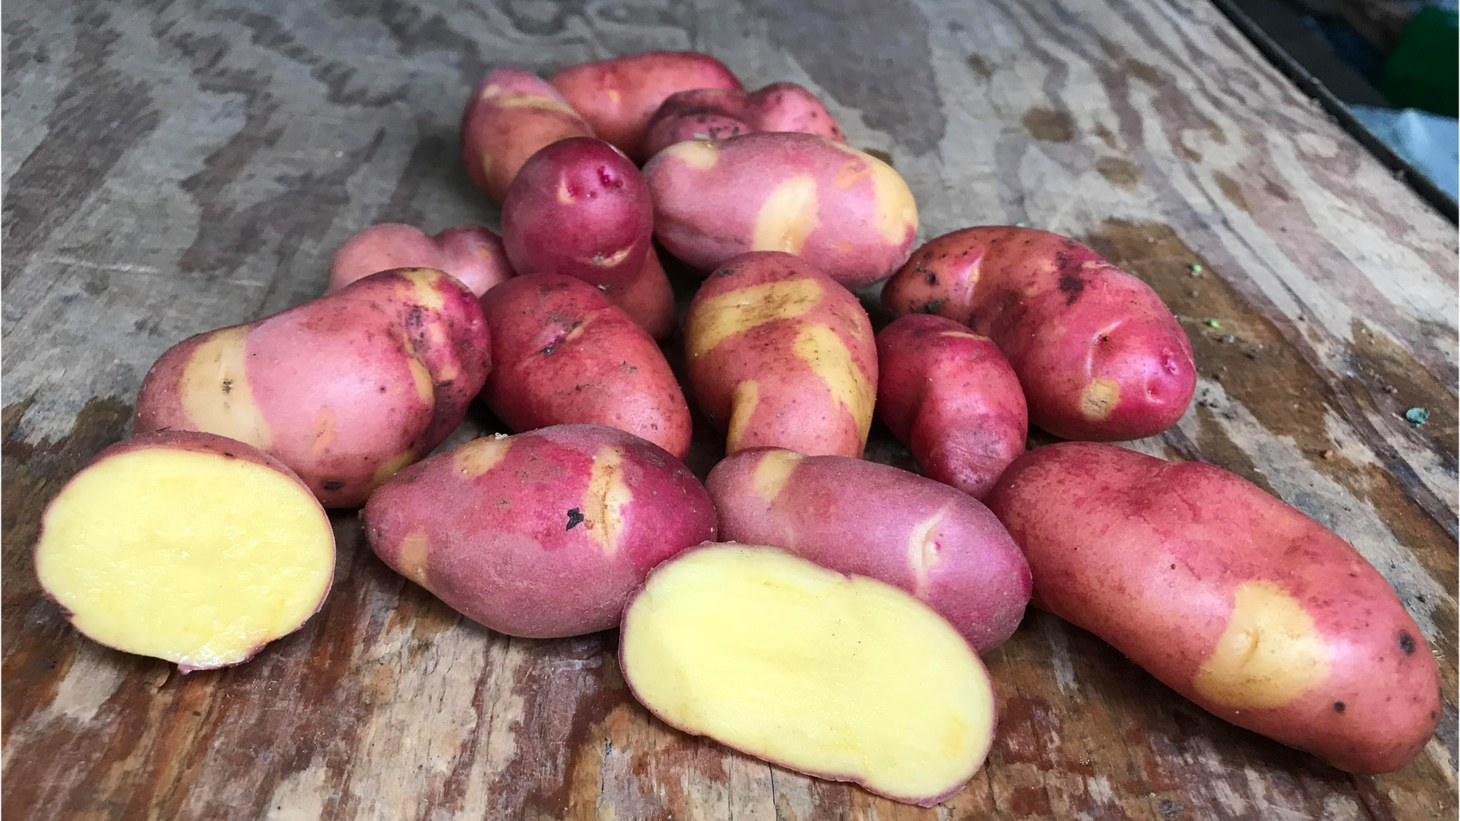 Magic myrna potatoes from Weiser Family Farms.